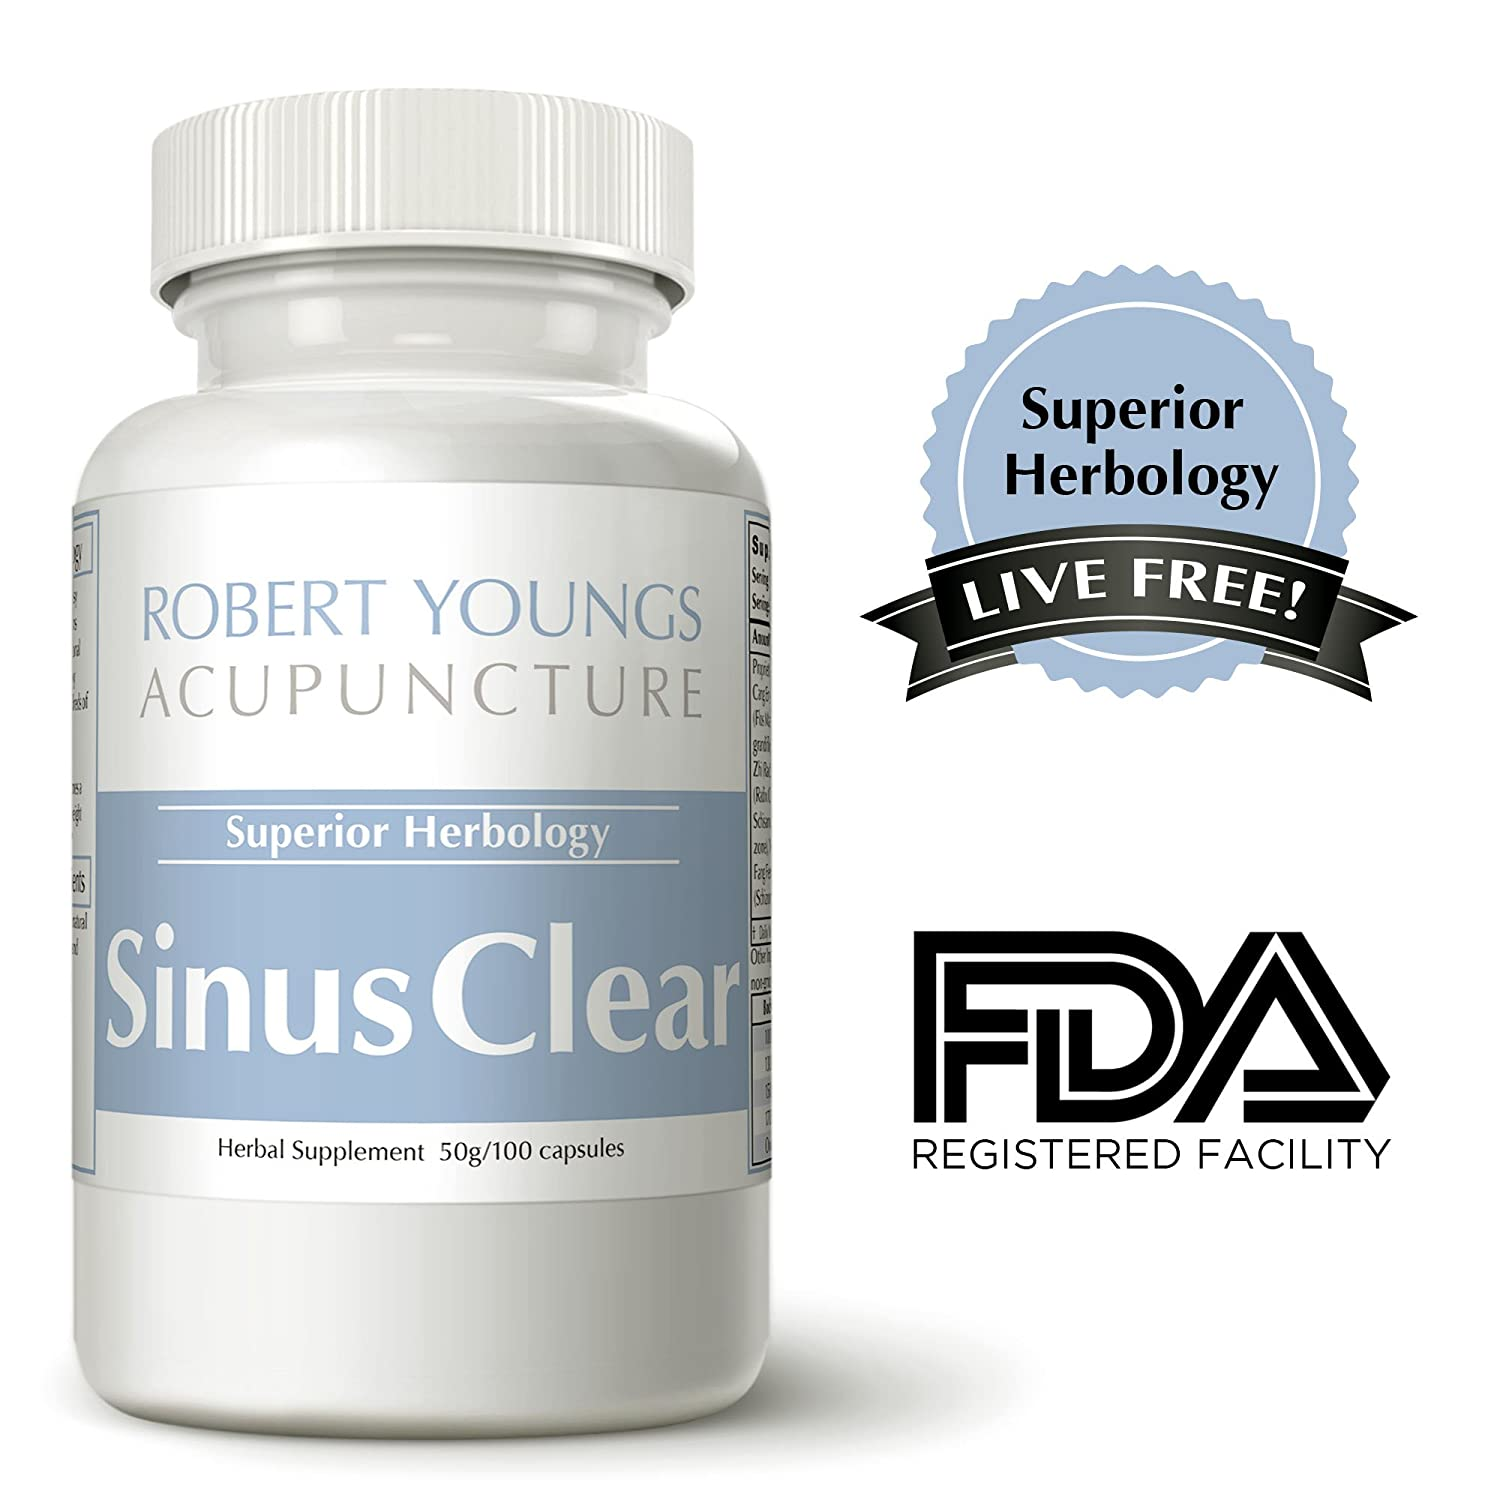 A wonderful tool to help cure sinusitis